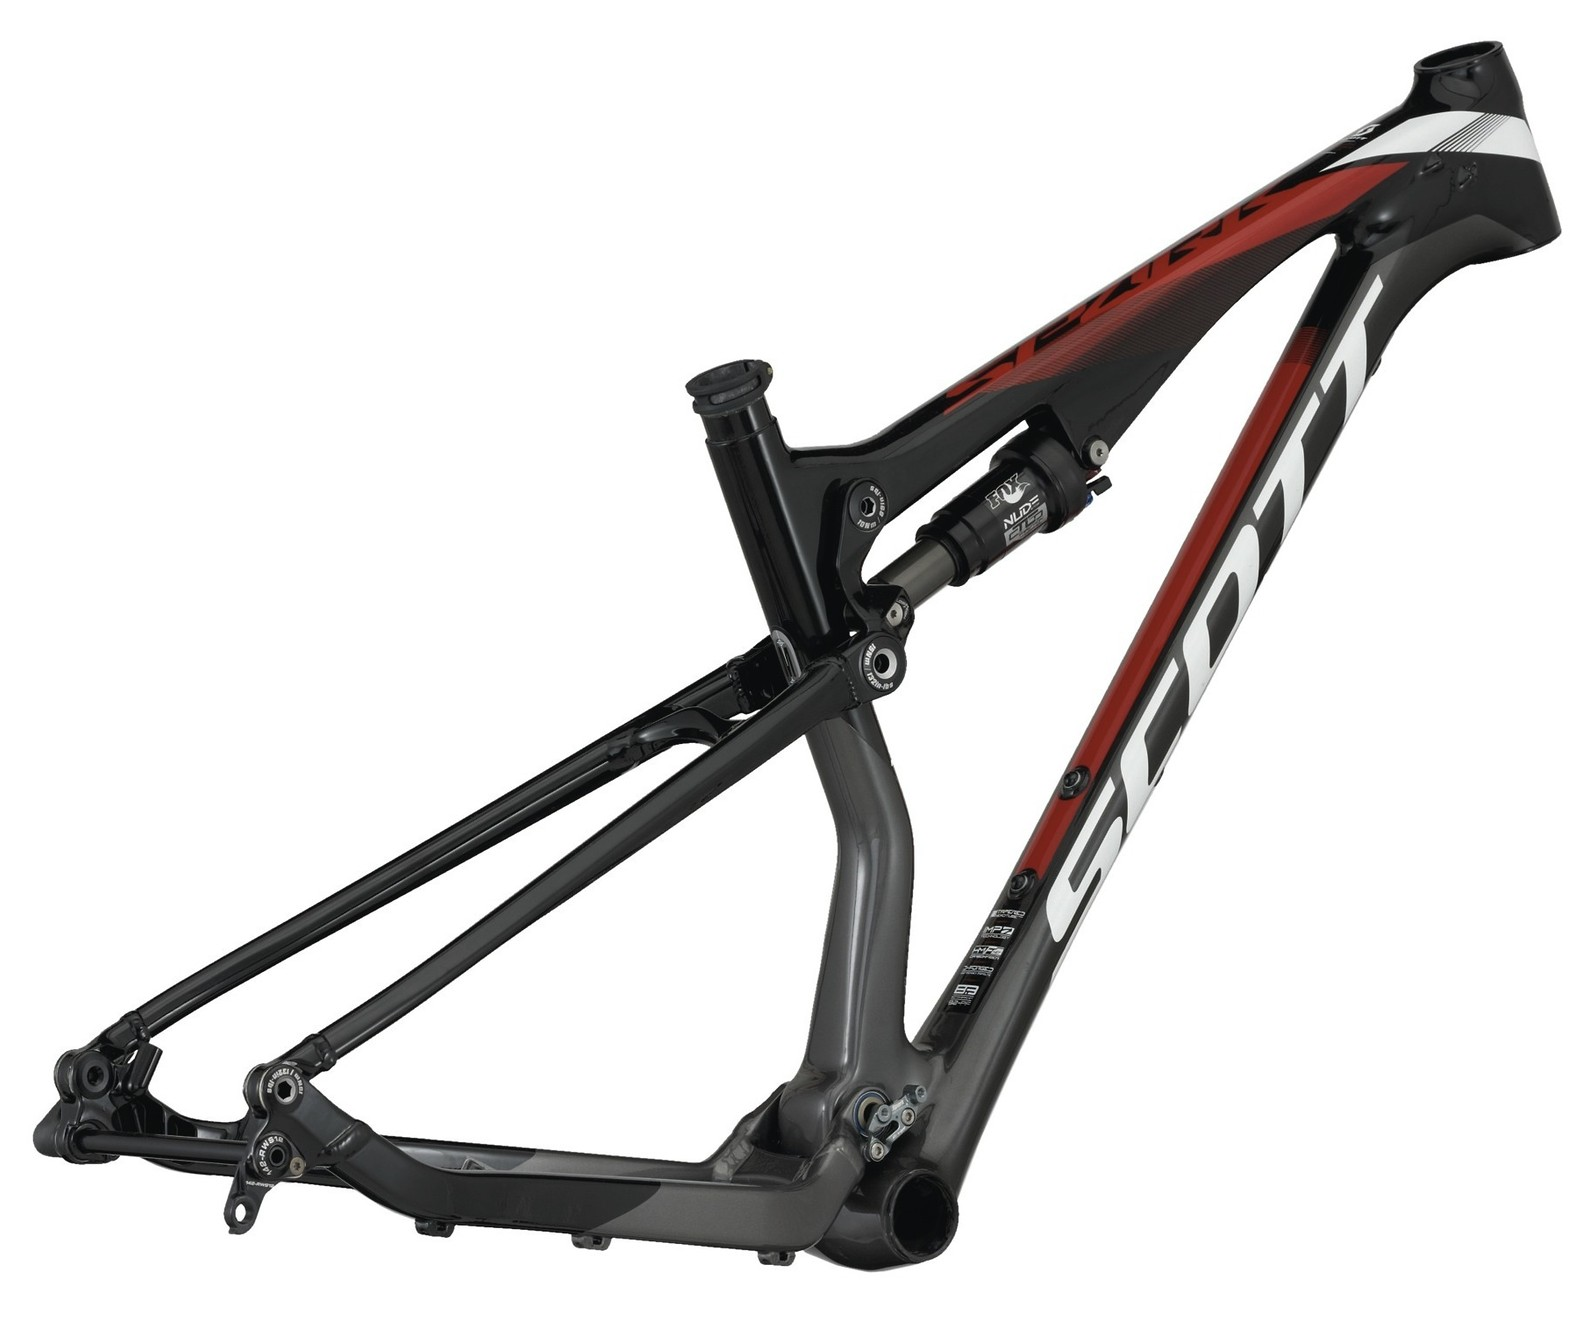 Scott Spark 910 Frame Frame set Spark 910 (HMF:alloy) (BB92)